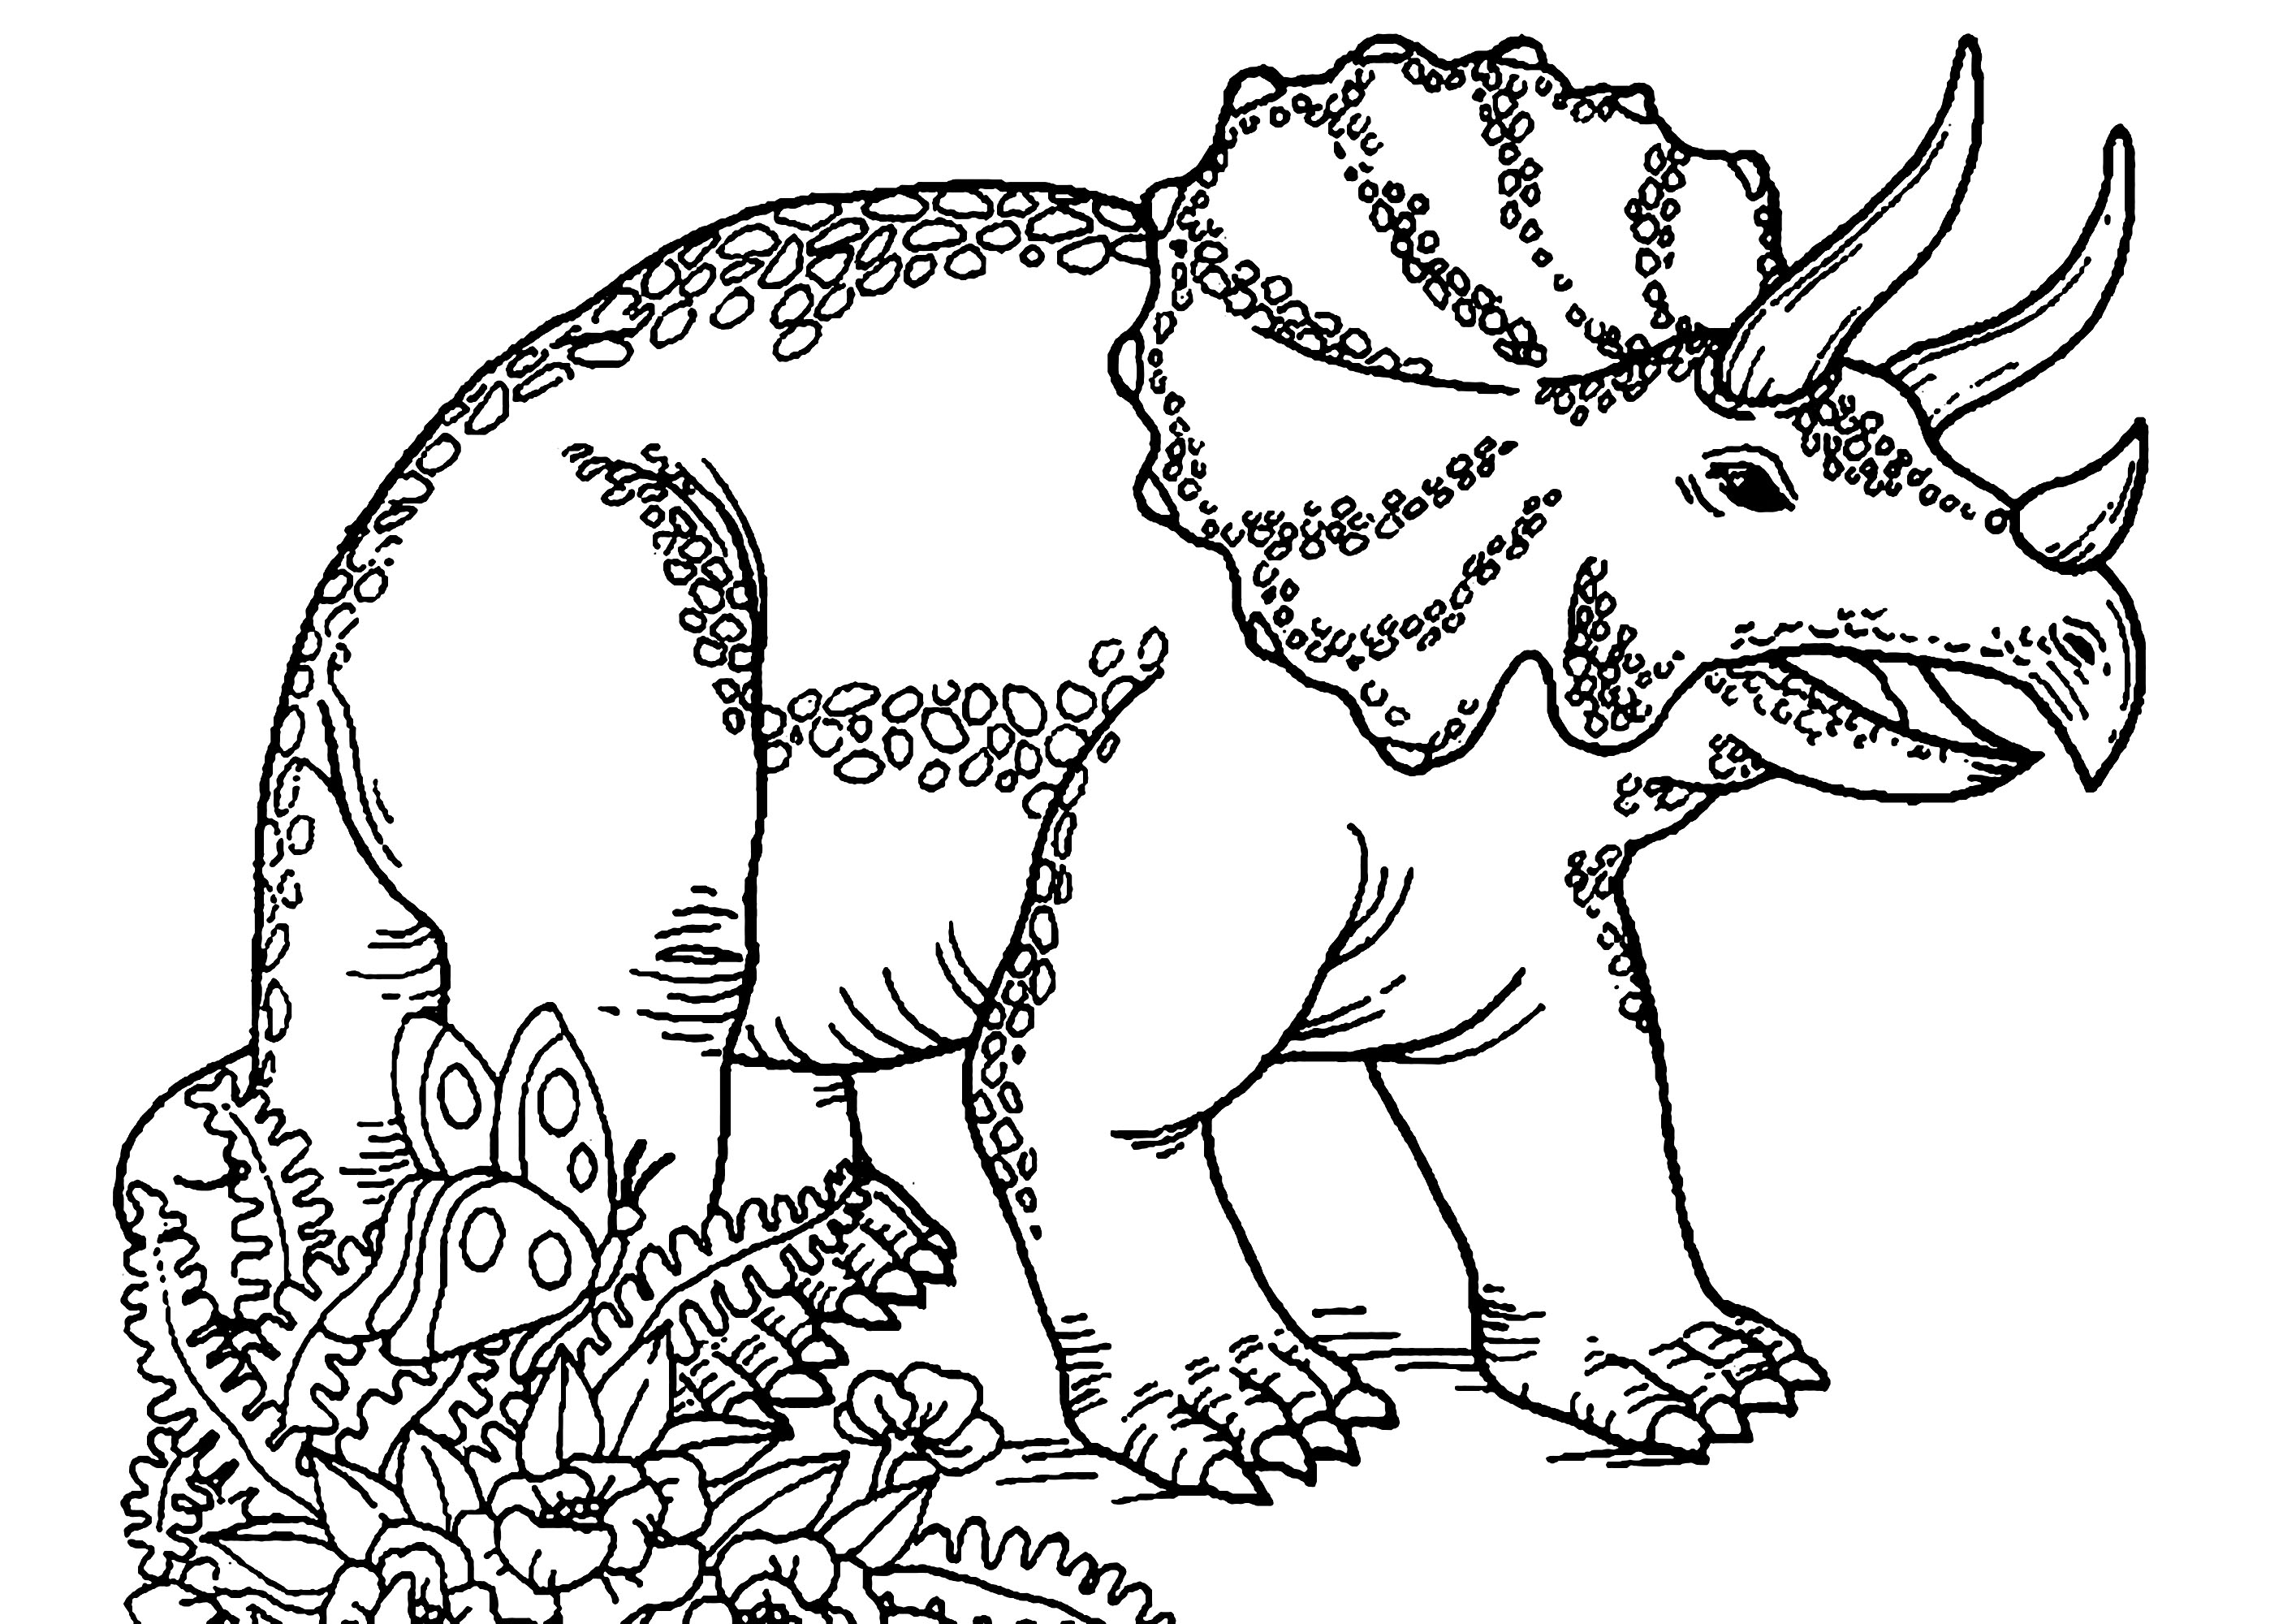 T-Rex dinosaur coloring pages for kids, printable free | Dinosaur ... | 2000x2828